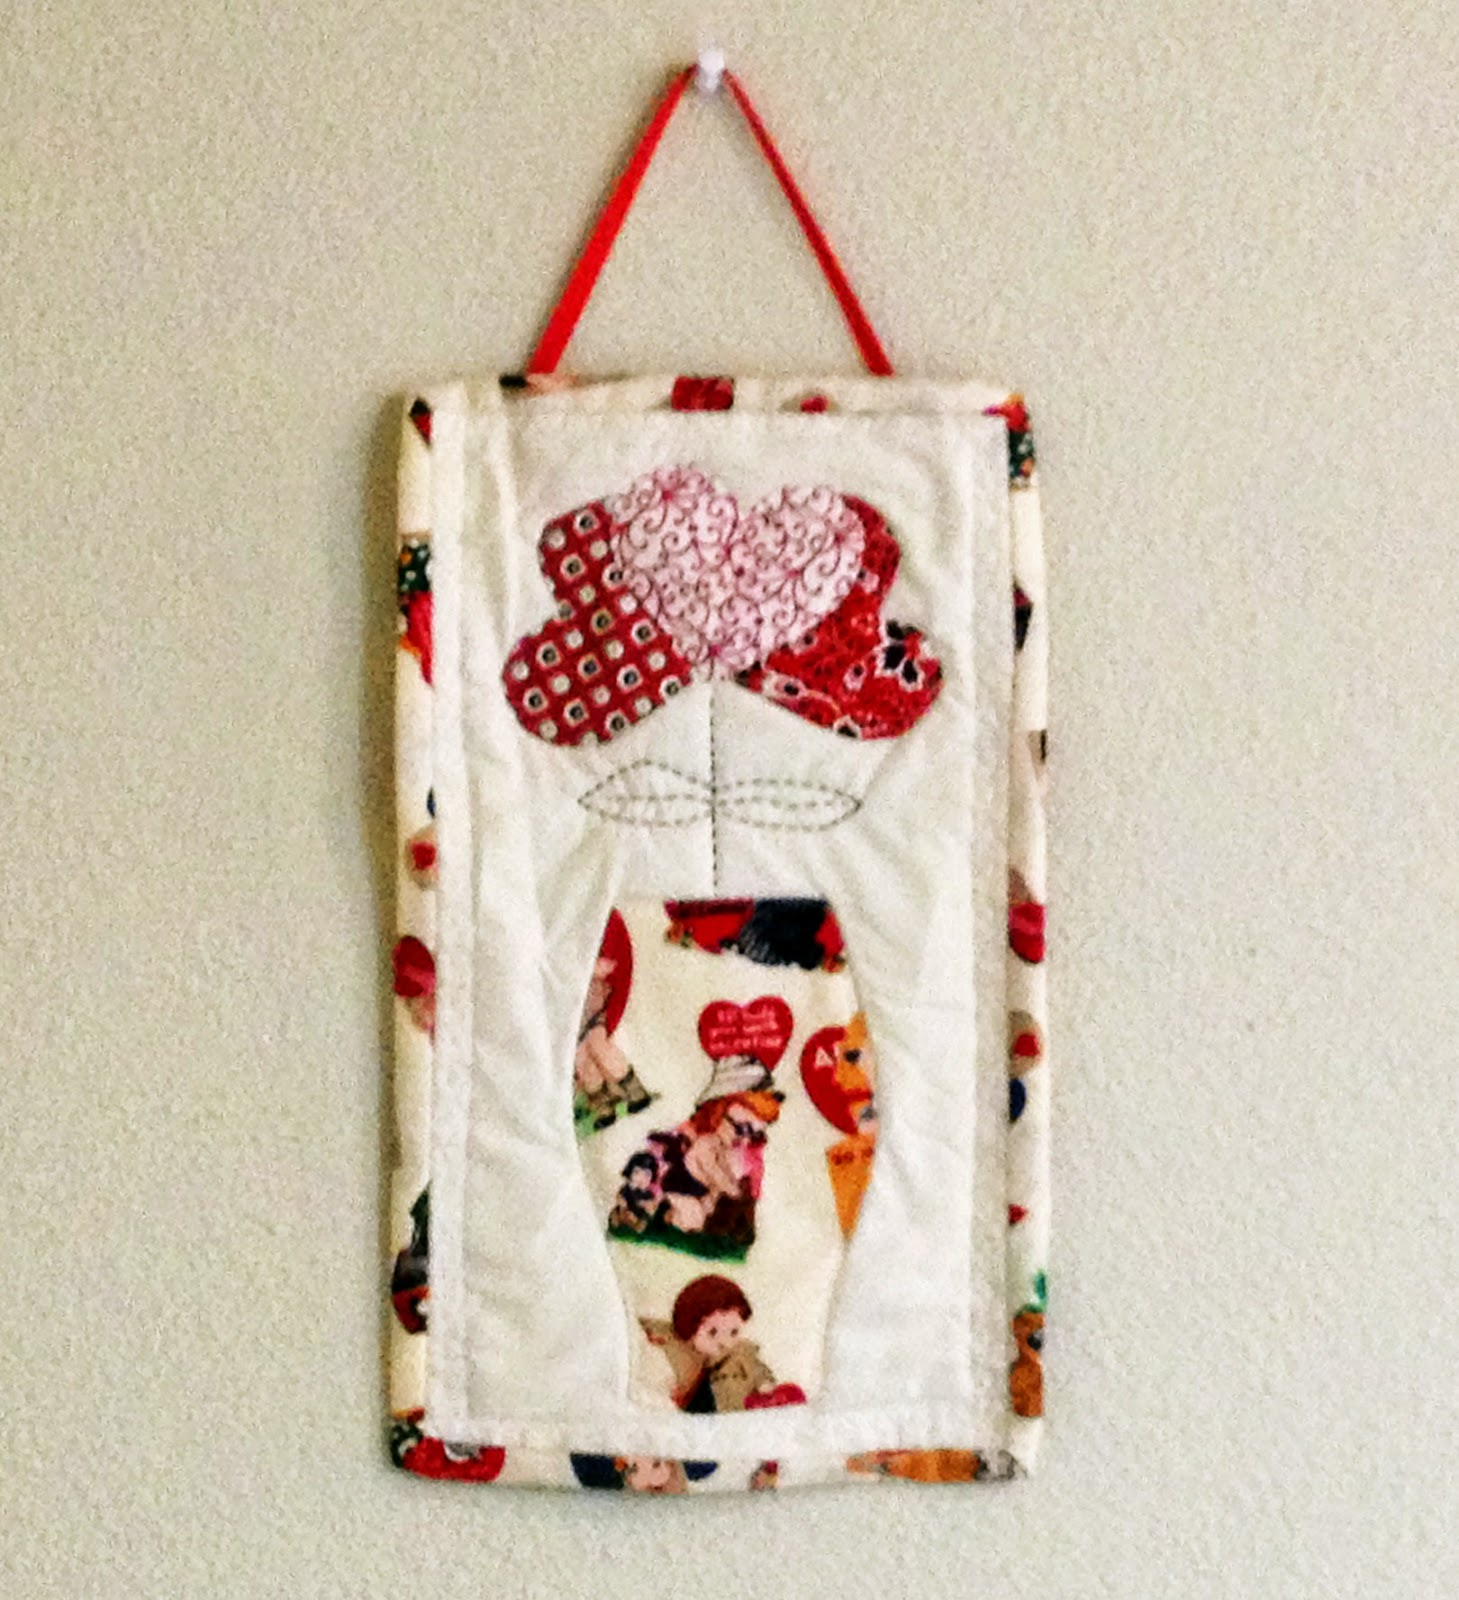 miniature wall hanging